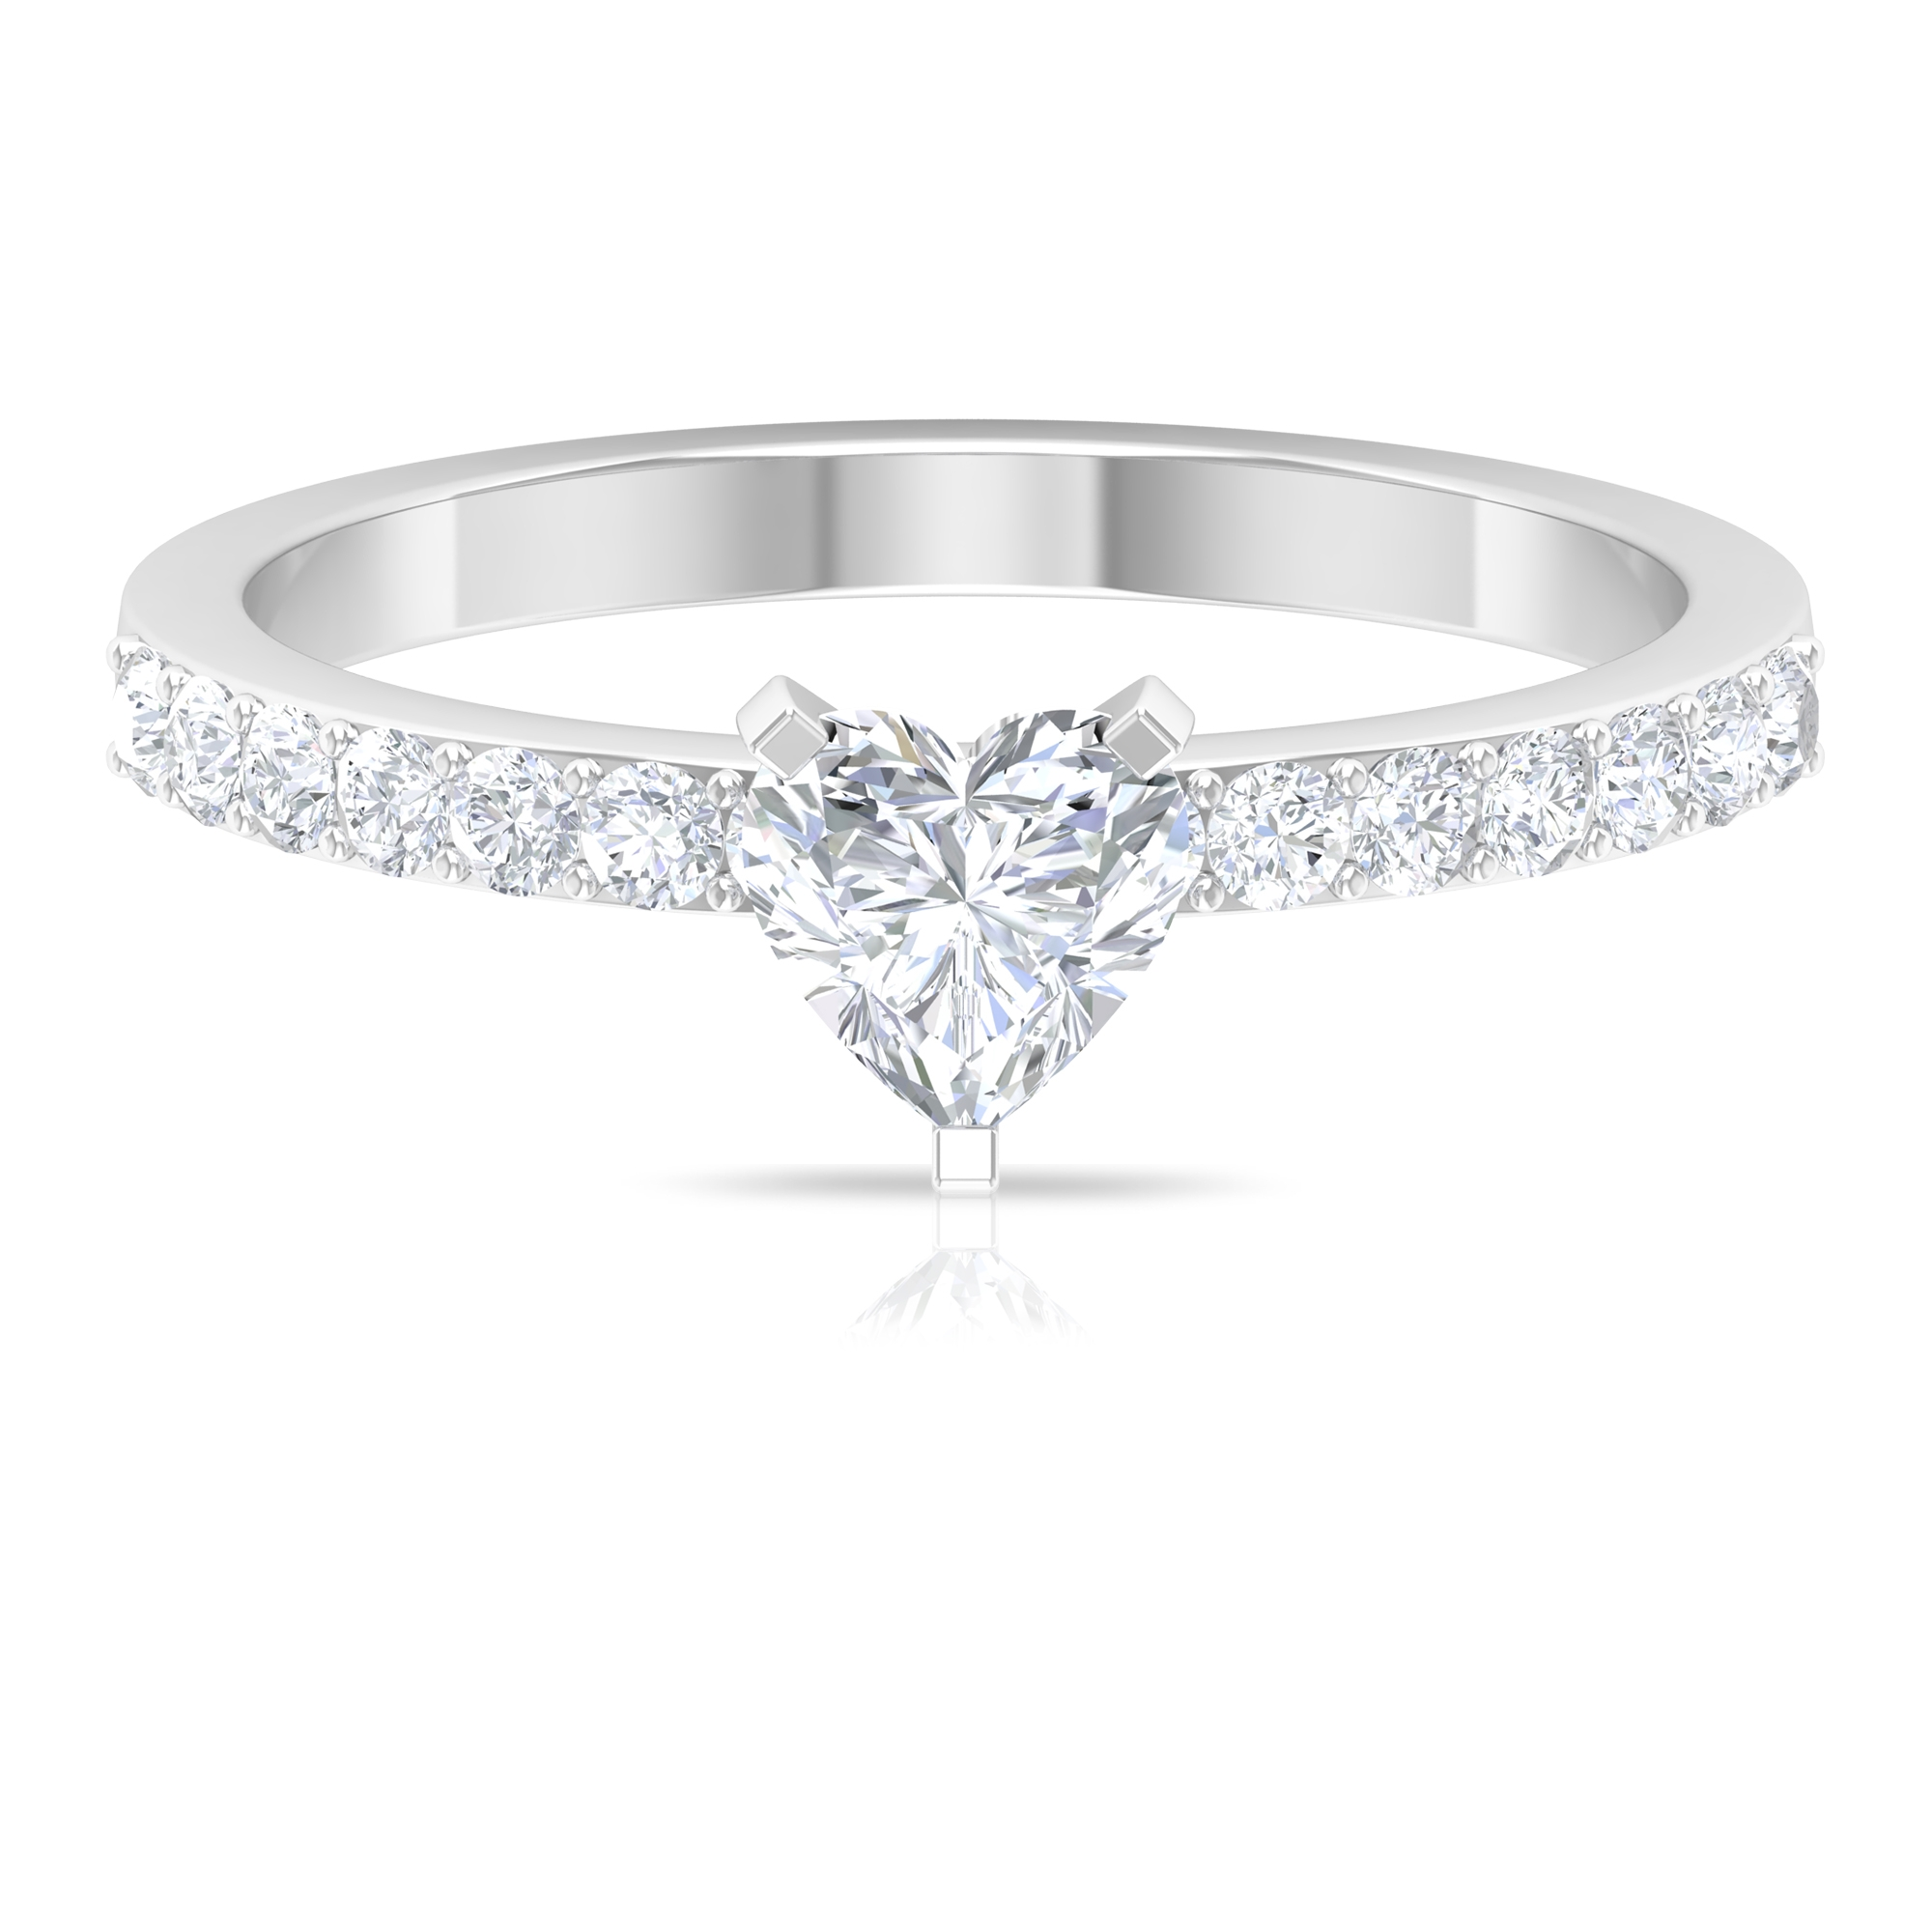 3/4 CT Heart Shape Diamond Solitaire Ring in 3 Prong Peg Head Setting with Surface Side Stones